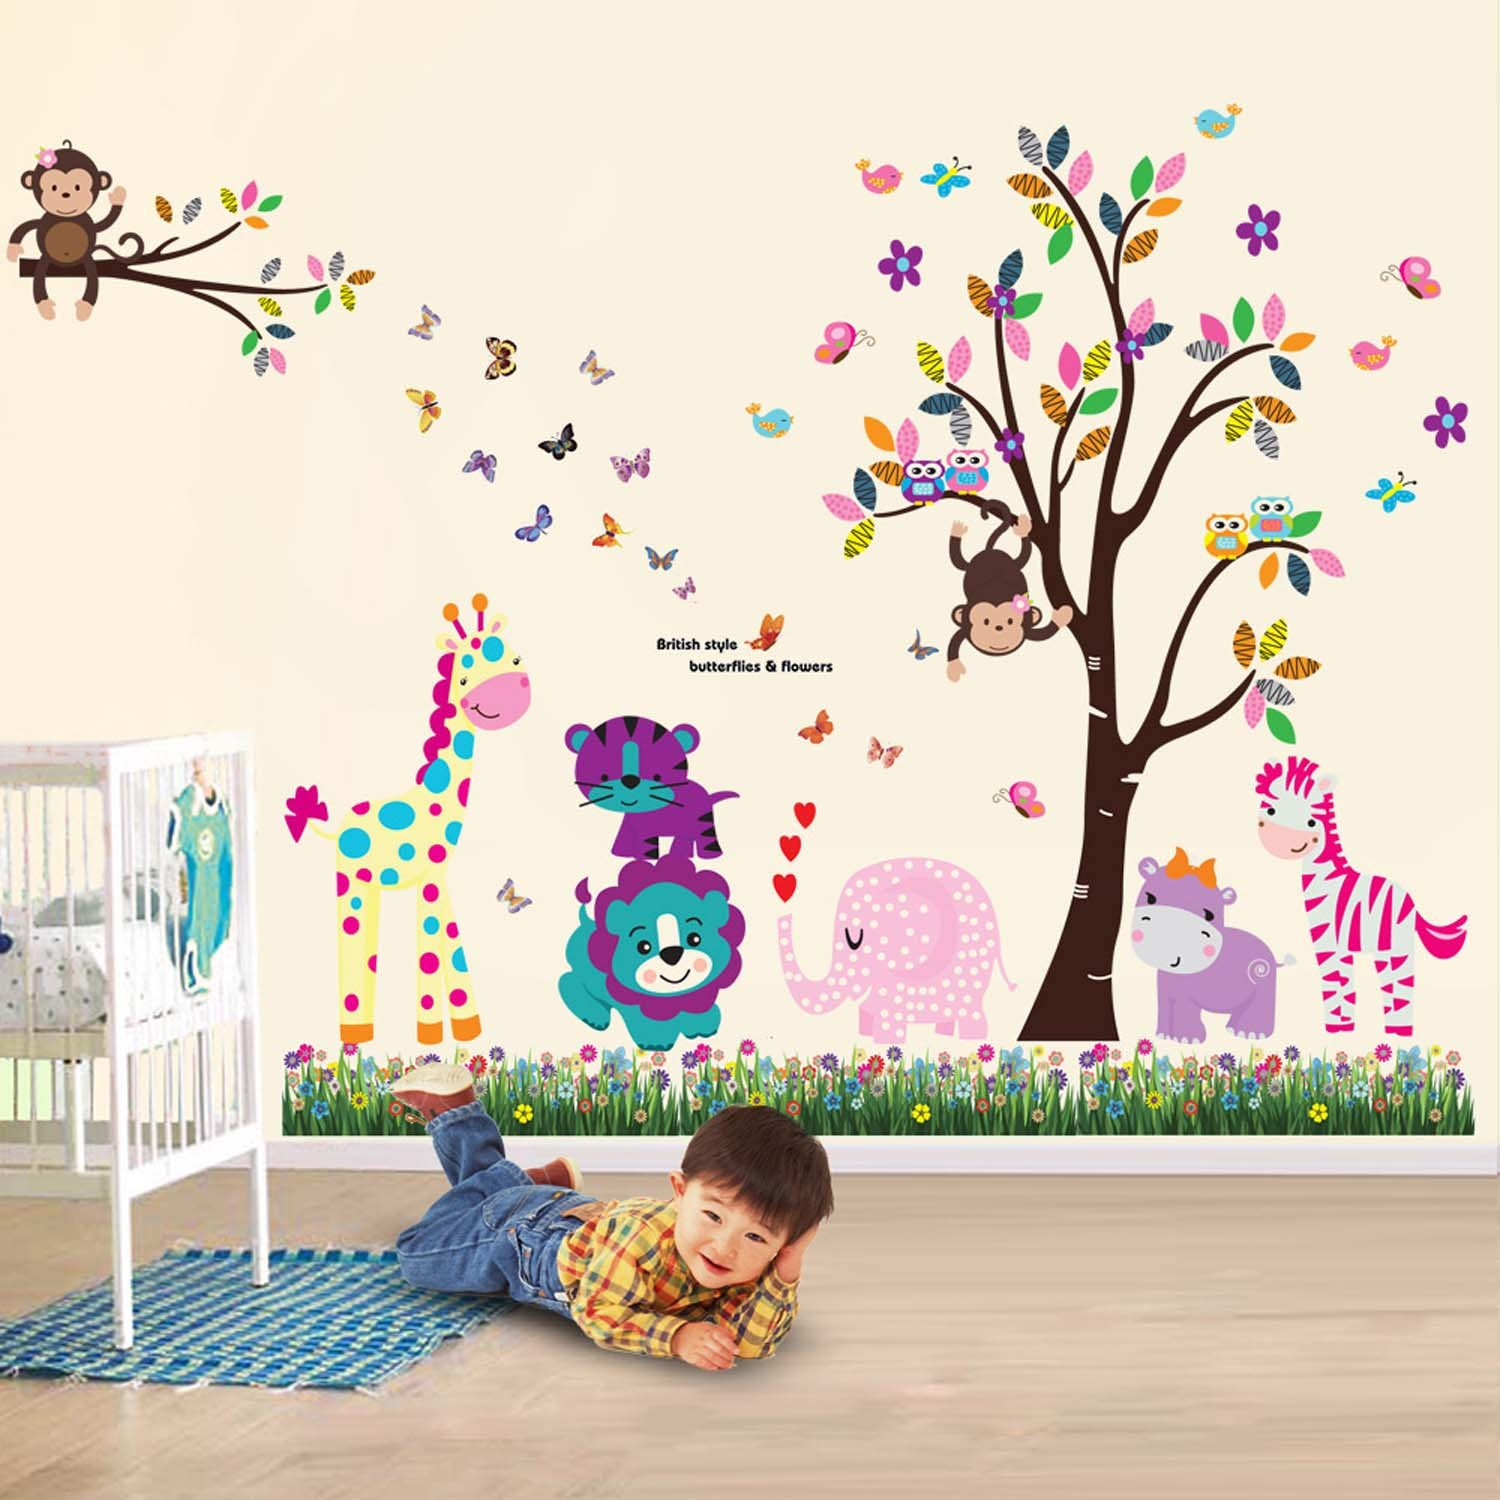 Walplus Wall Stickers Happy Animals Tree Butterfly Grass Removable Self-Adhesive Mural Art Decals Vinyl Home Decoration DIY Living Bedroom Office Décor ...  sc 1 st  Amazon UK : sticker wall art uk - www.pureclipart.com